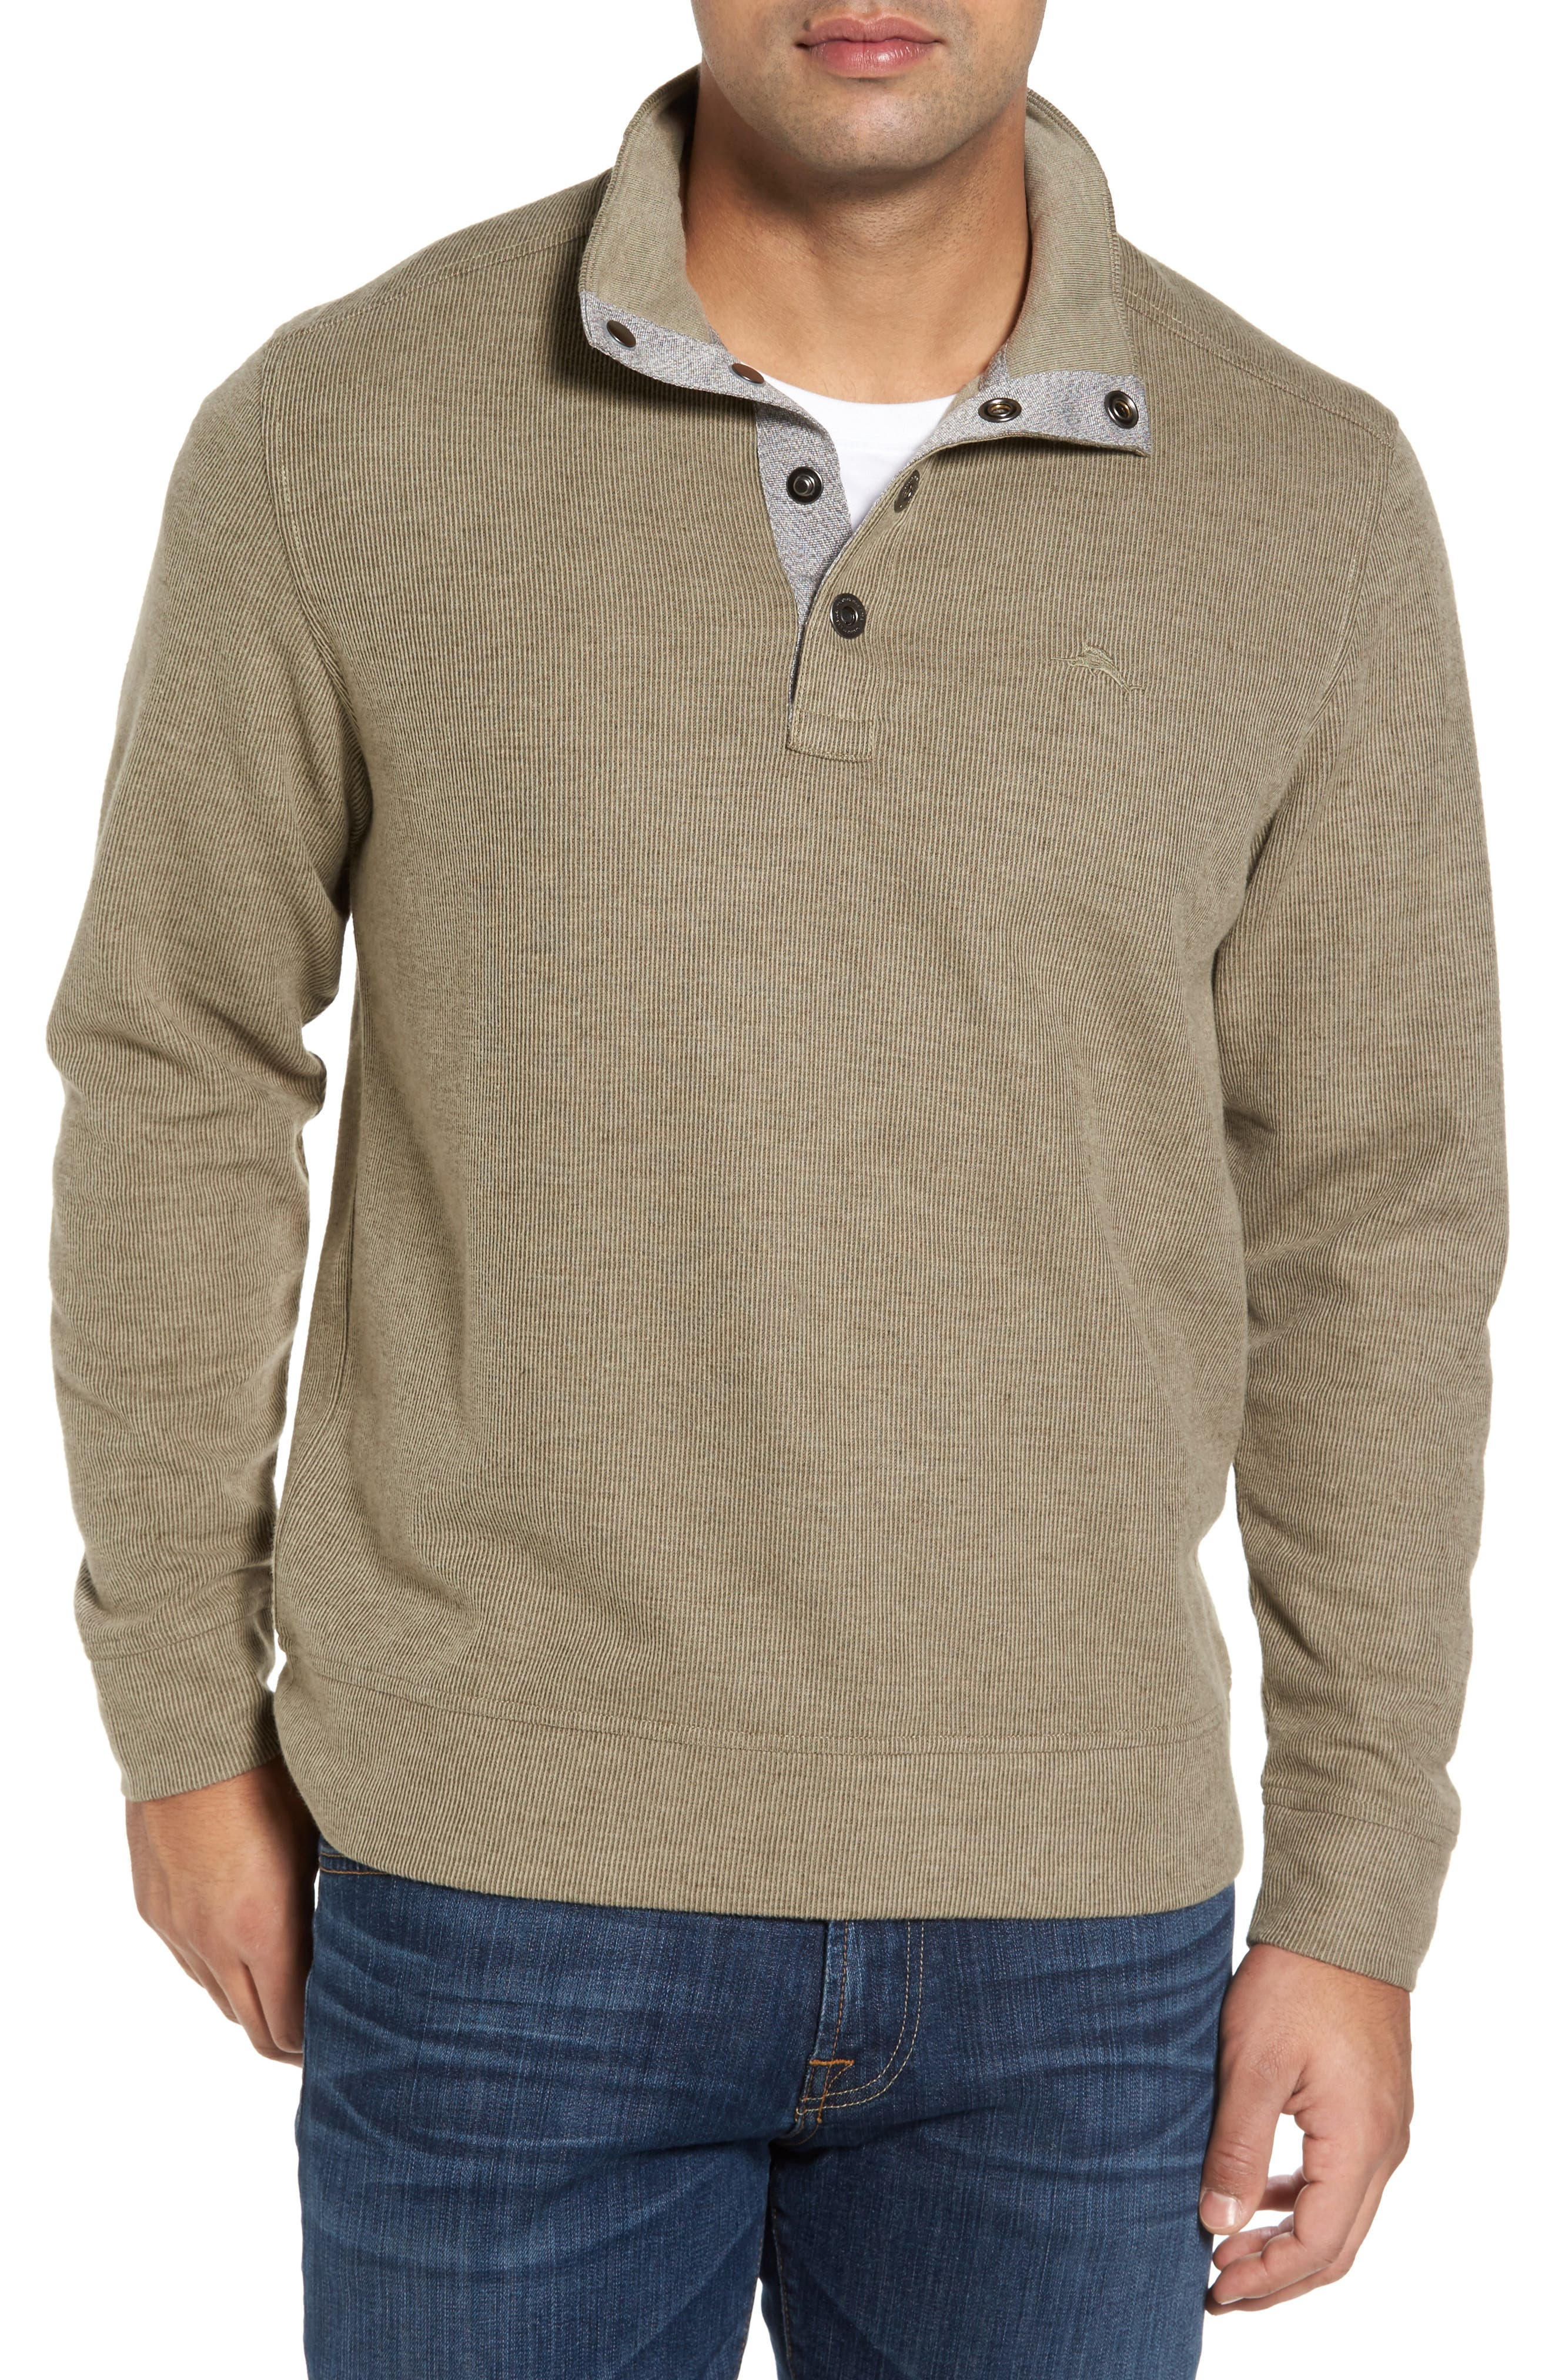 Main Image - Tommy Bahama Cold Springs Snap Mock Neck Sweater